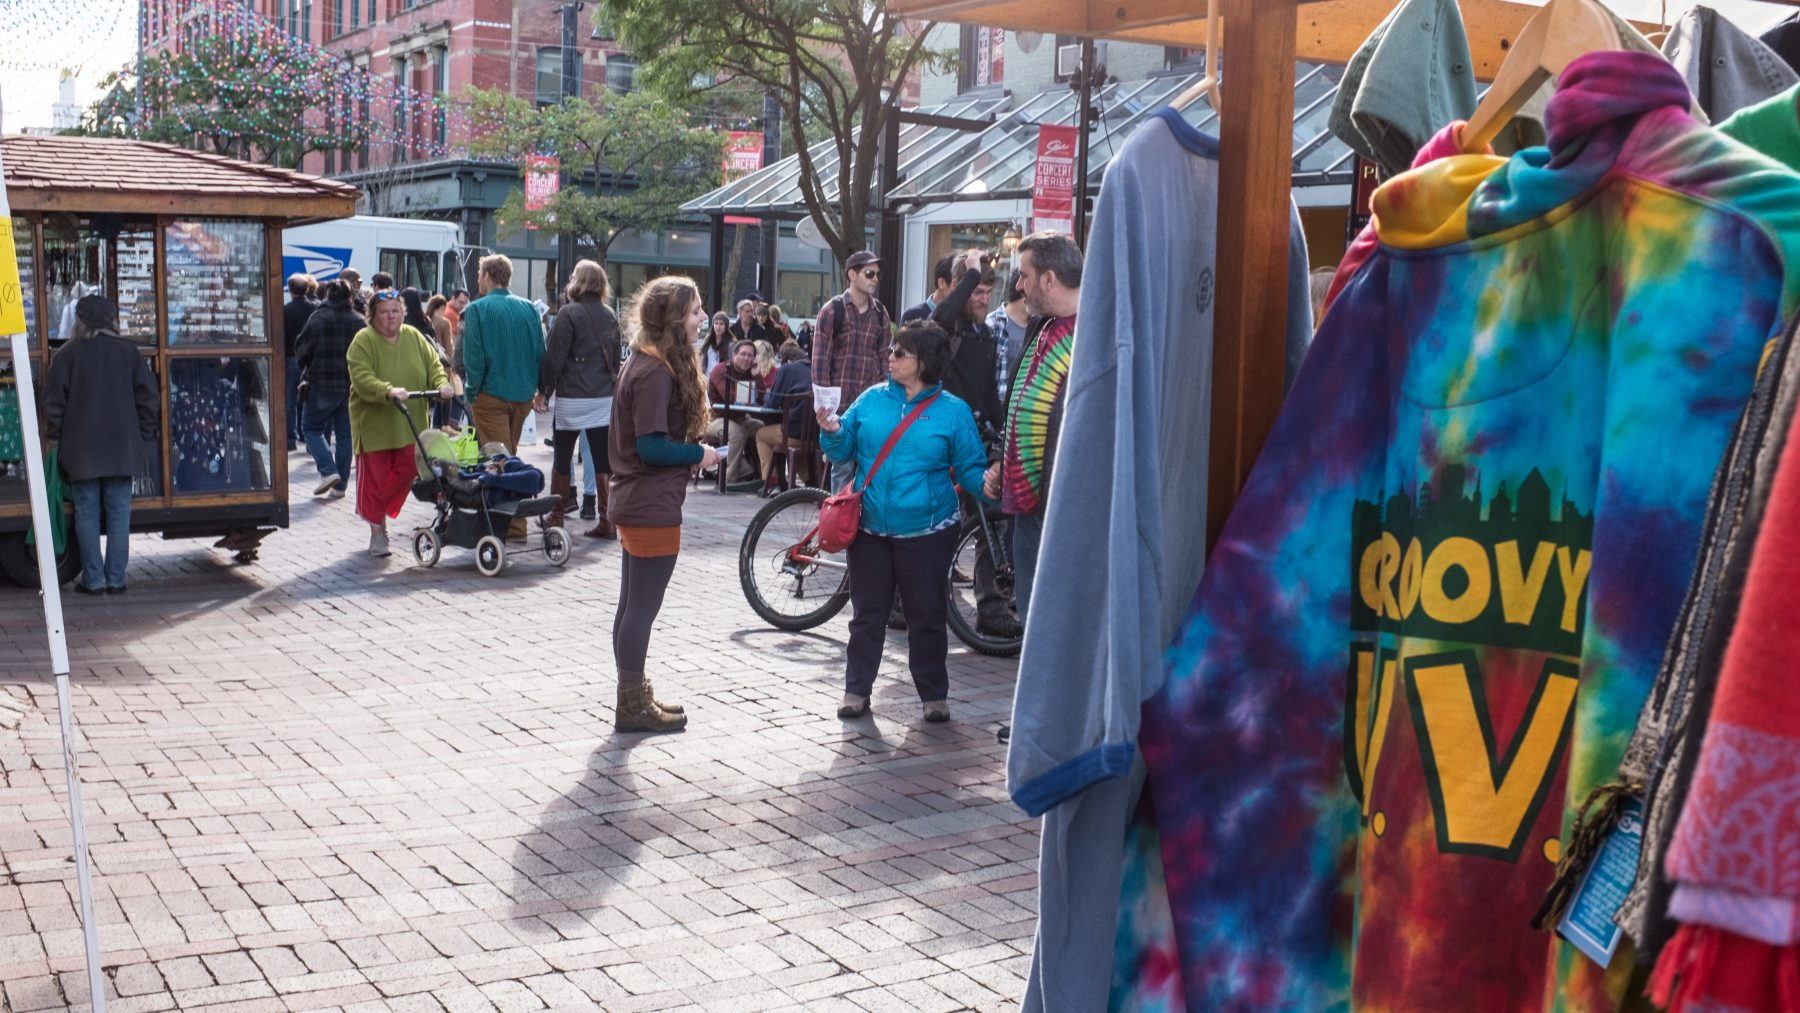 People on Church Street with a rack of shirts in the foreground